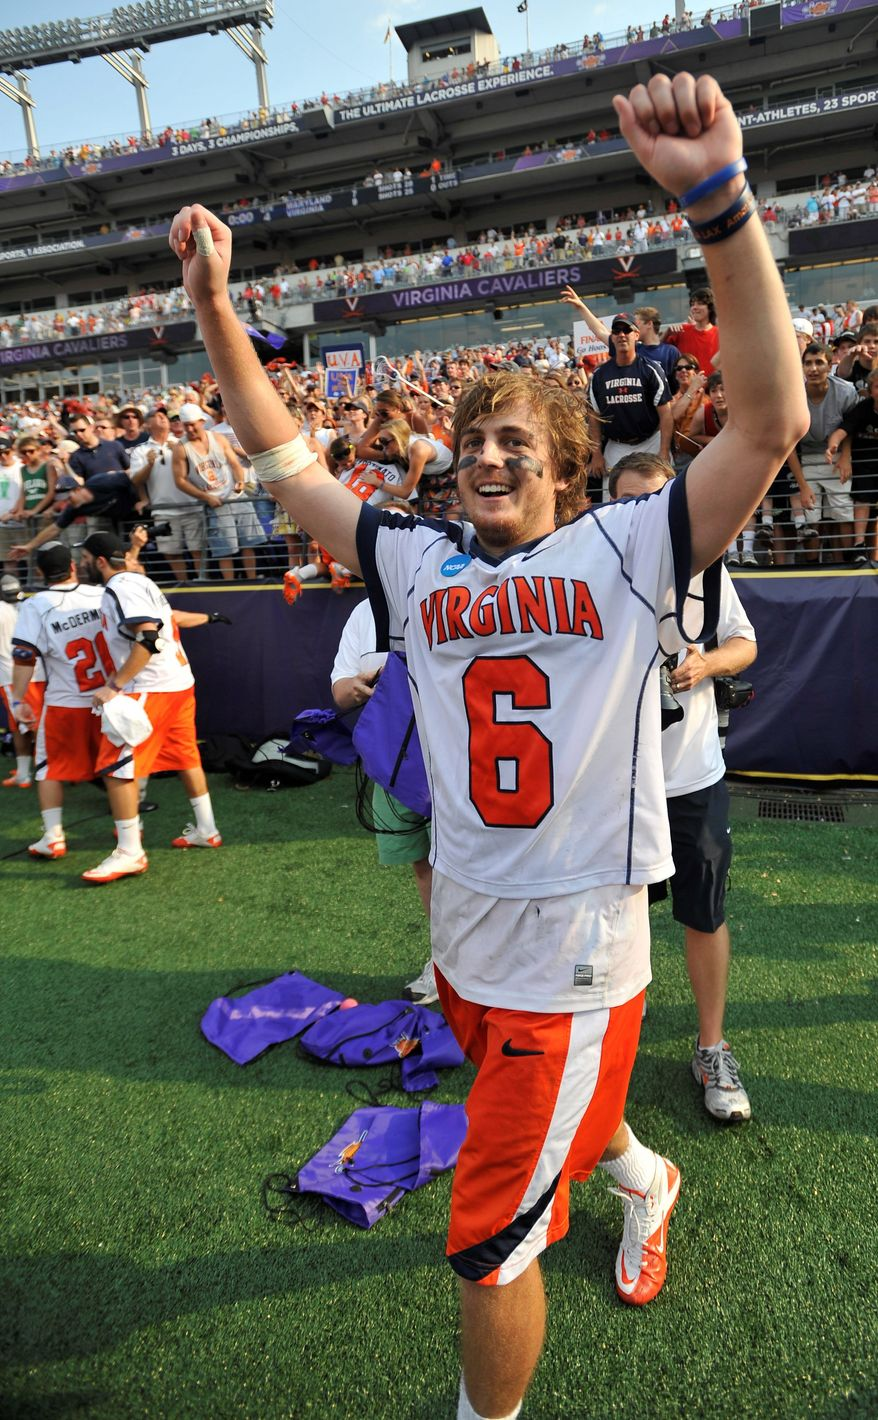 Senior attackman Steele Stanwick, celebrating last year's NCAA title, will start another tournament run Sunday. (Associated Press)